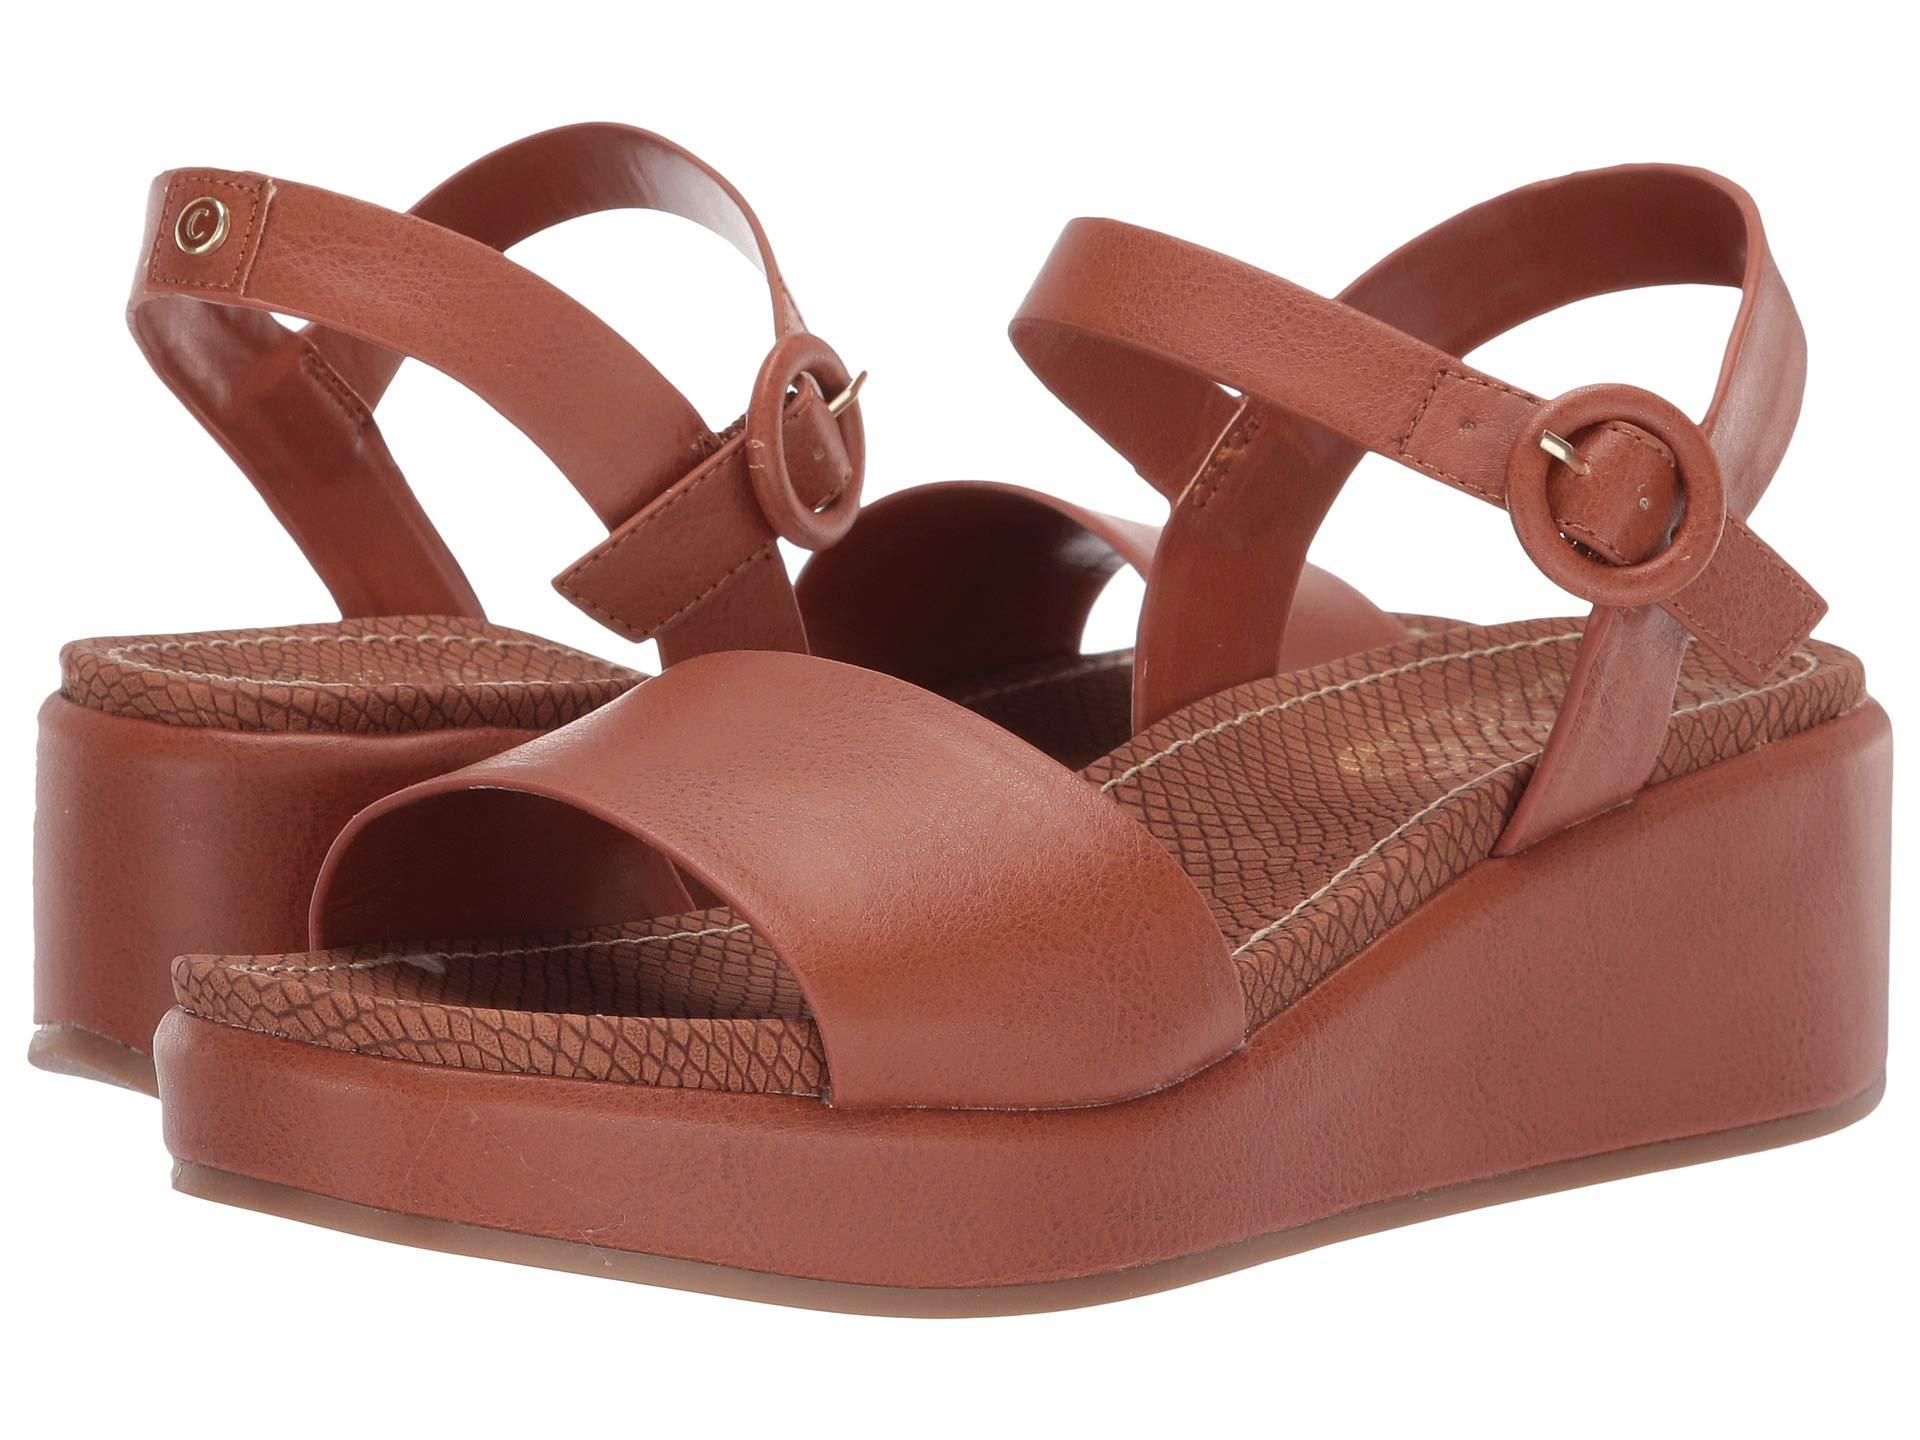 a8213932cb11 Lyst - Circus by Sam Edelman Sarah in Brown - Save 7%